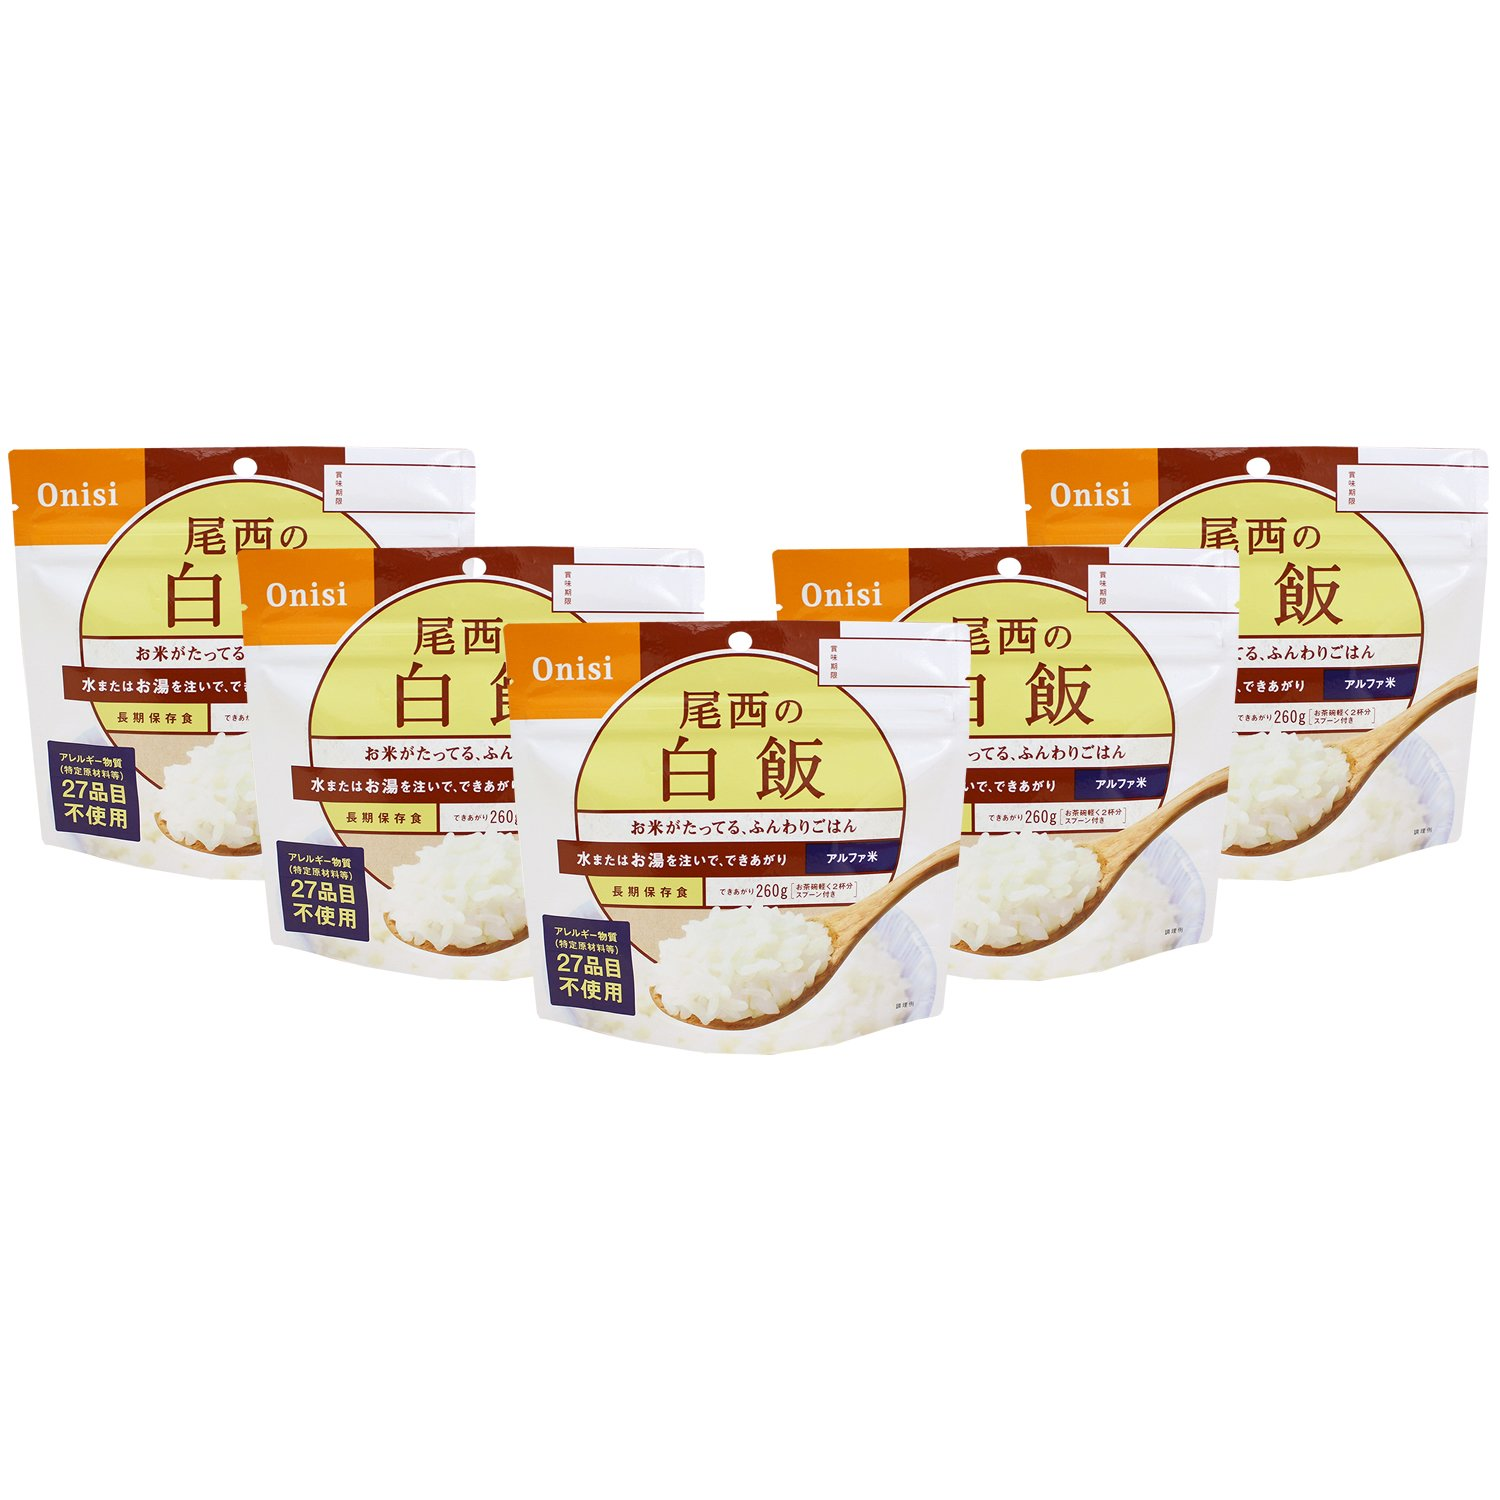 Alpha rice white rice 100g ~ 5 meals